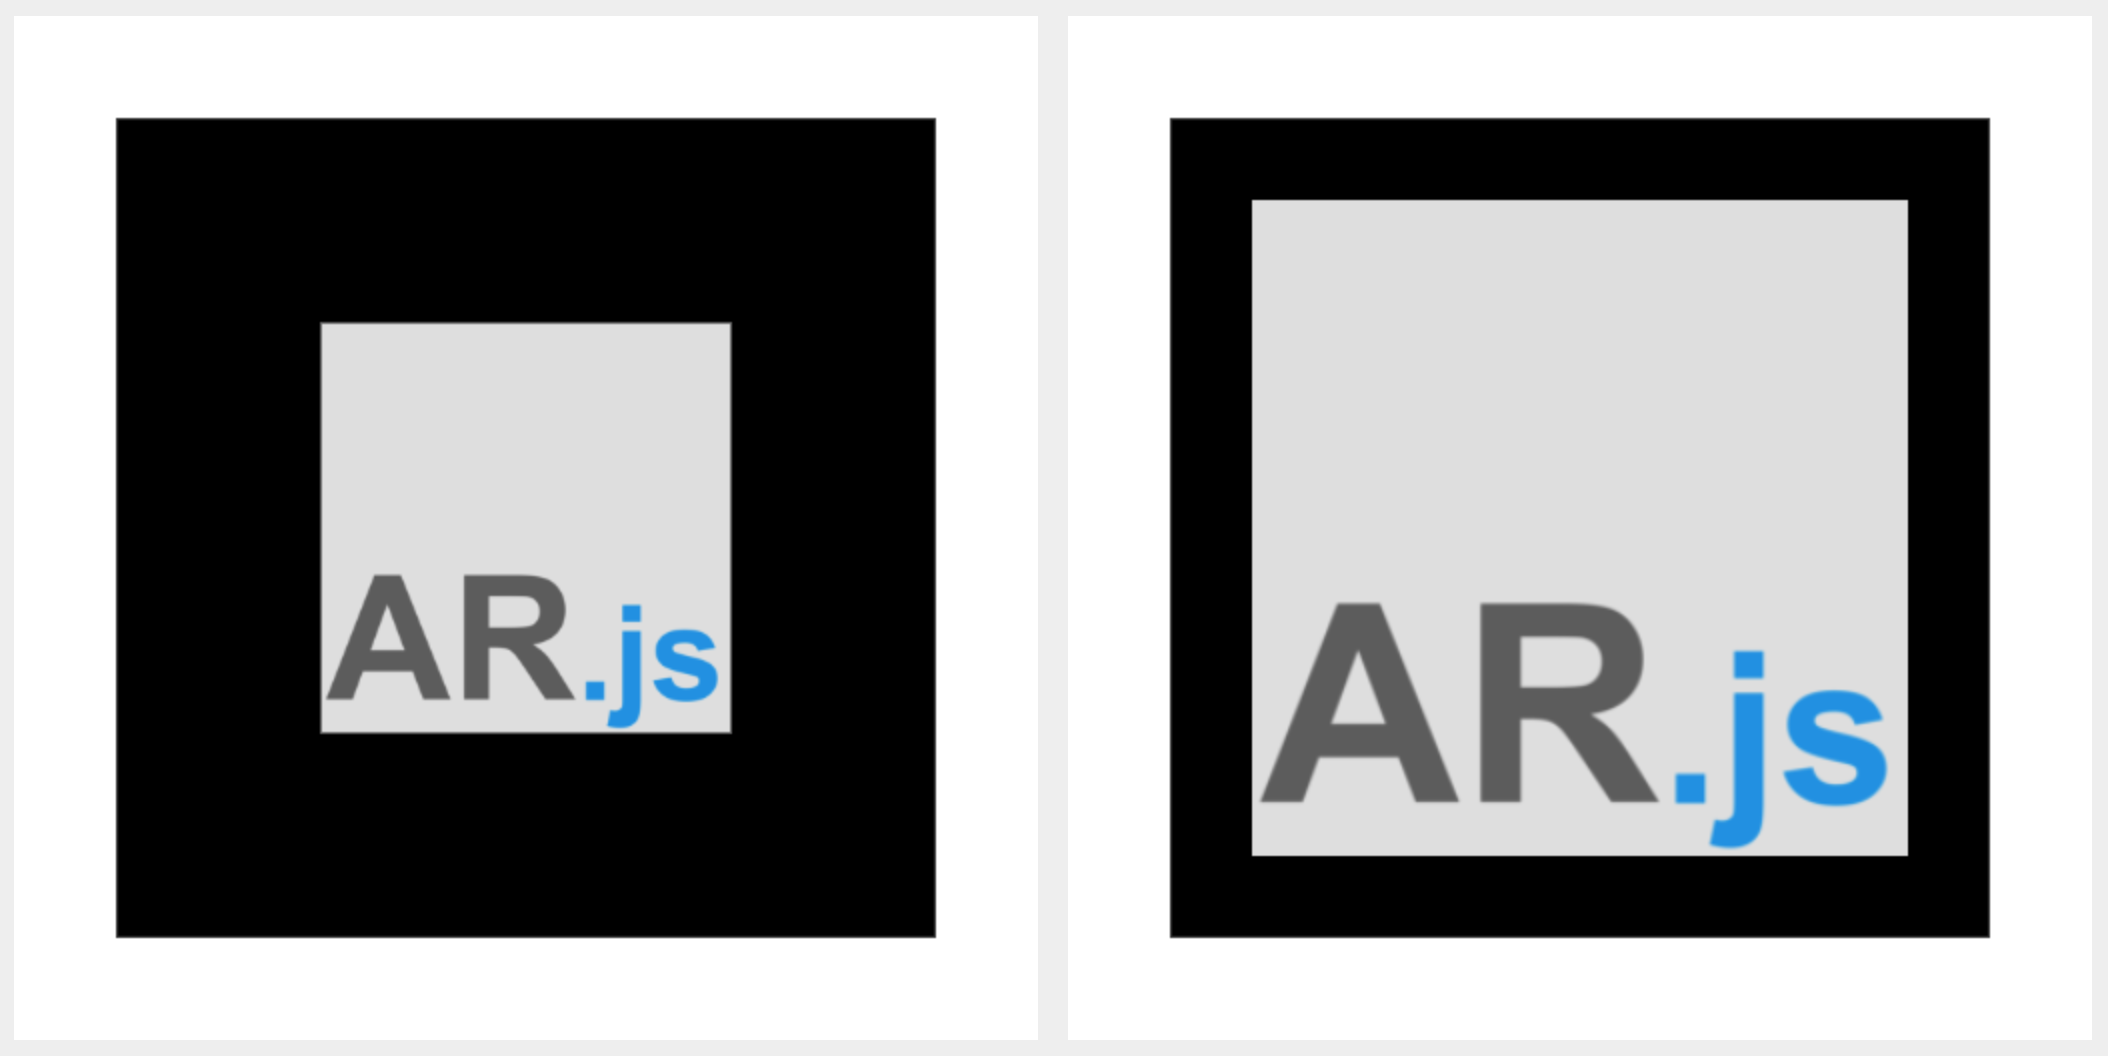 Tips + tricks to spice up your AR js projects - Andrew